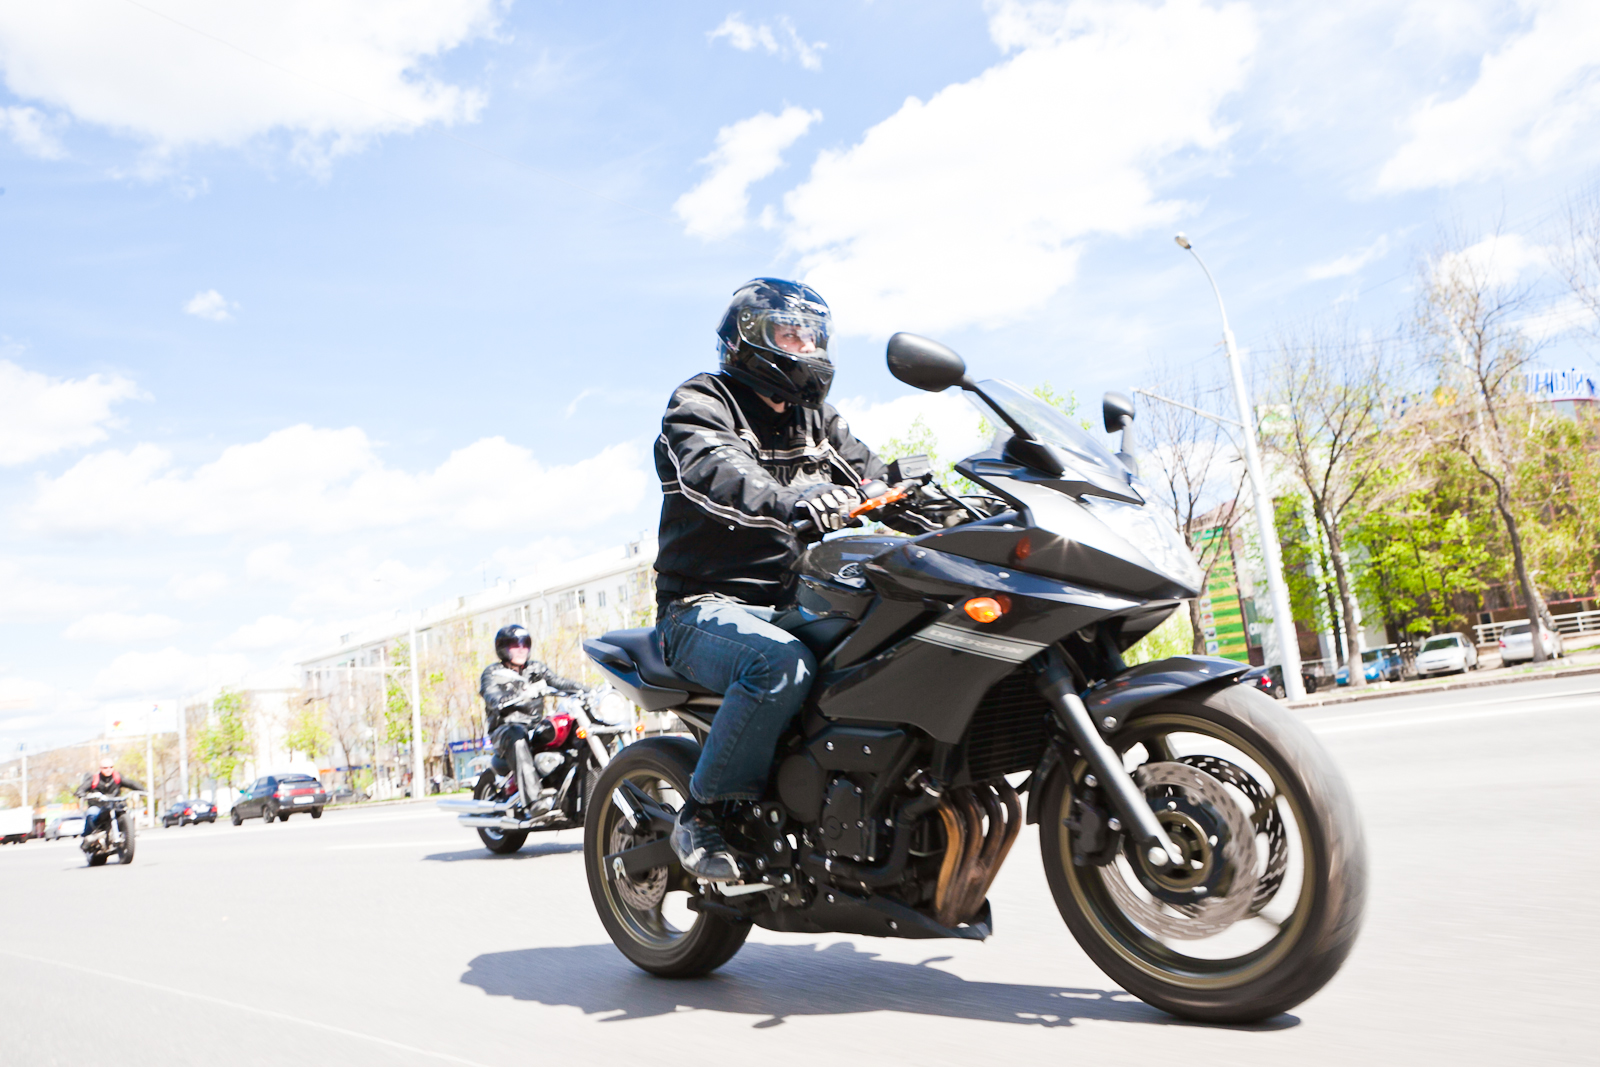 Biker, Adventure, Person, Travel, Transportation, HQ Photo